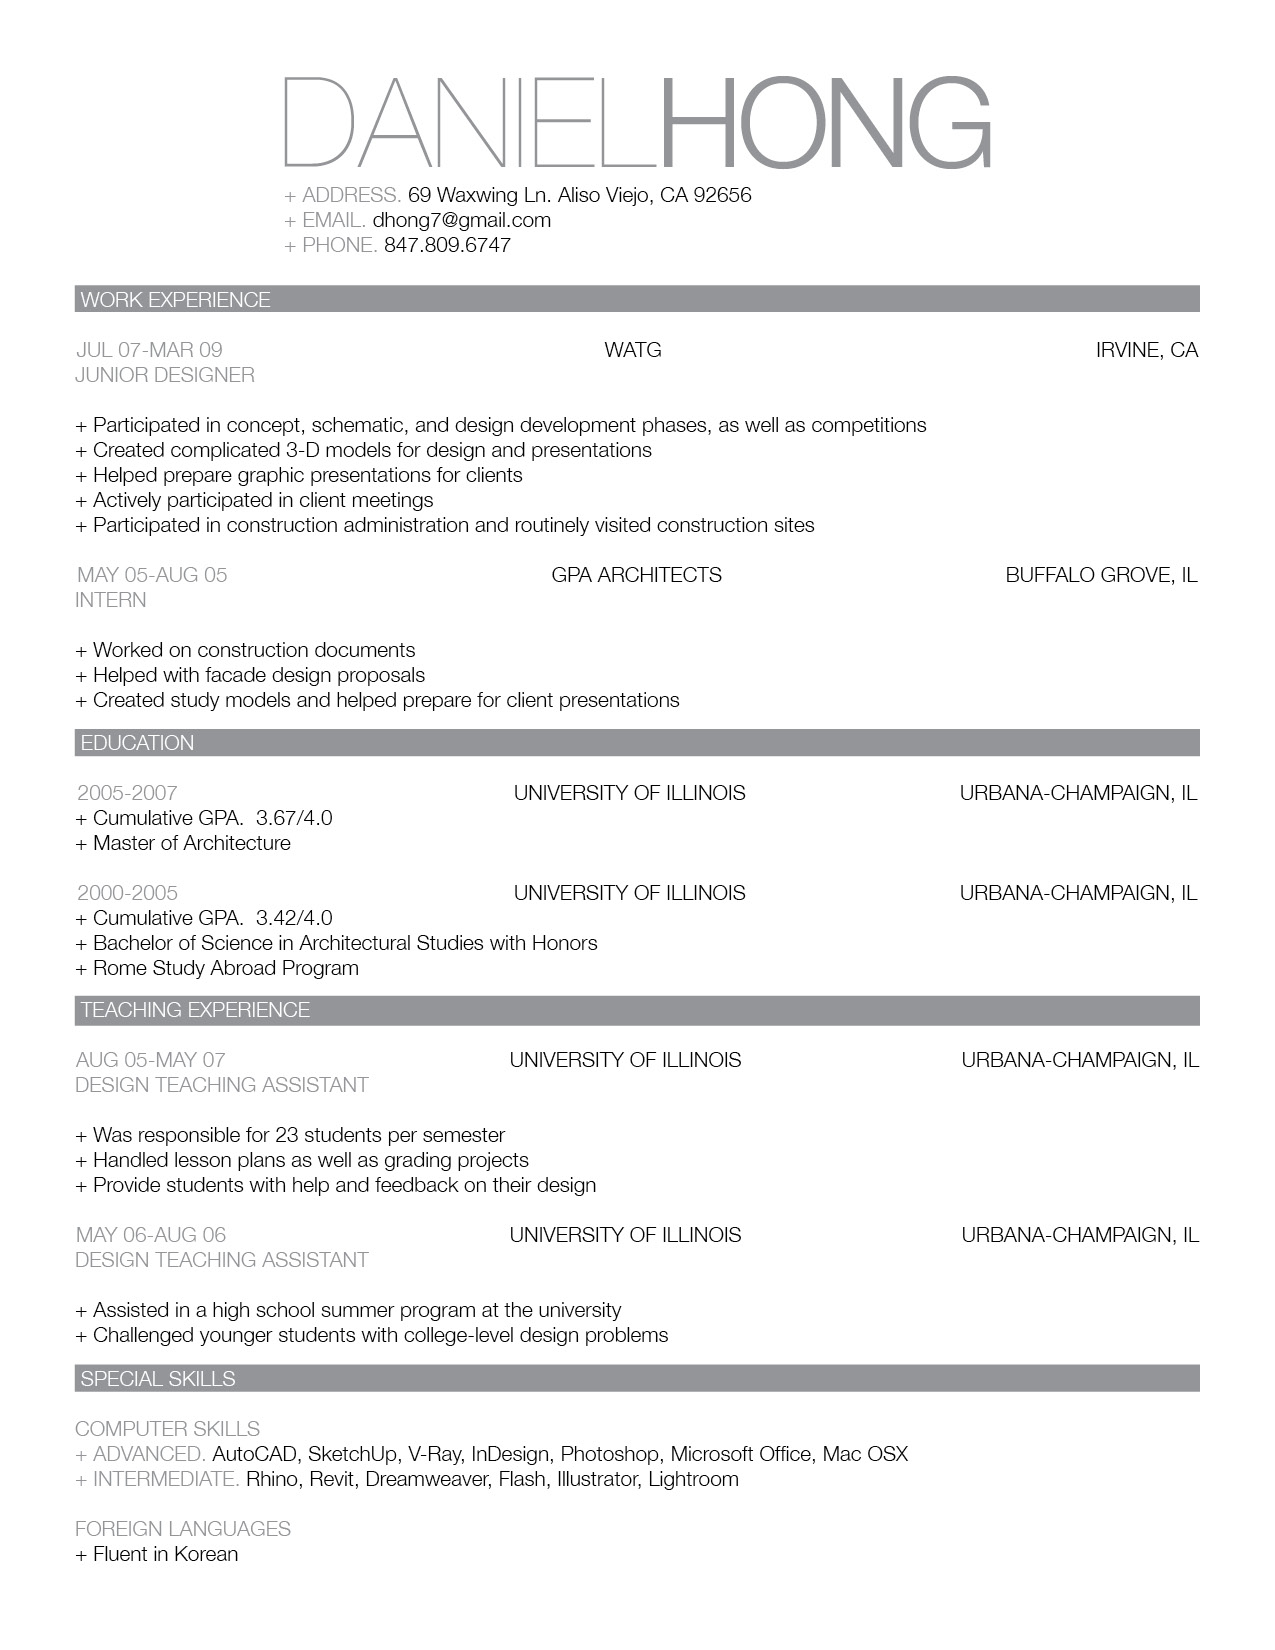 sample updated resume format resume builder sample updated resume format the 1 sample resumes website updated cv and work sample dans